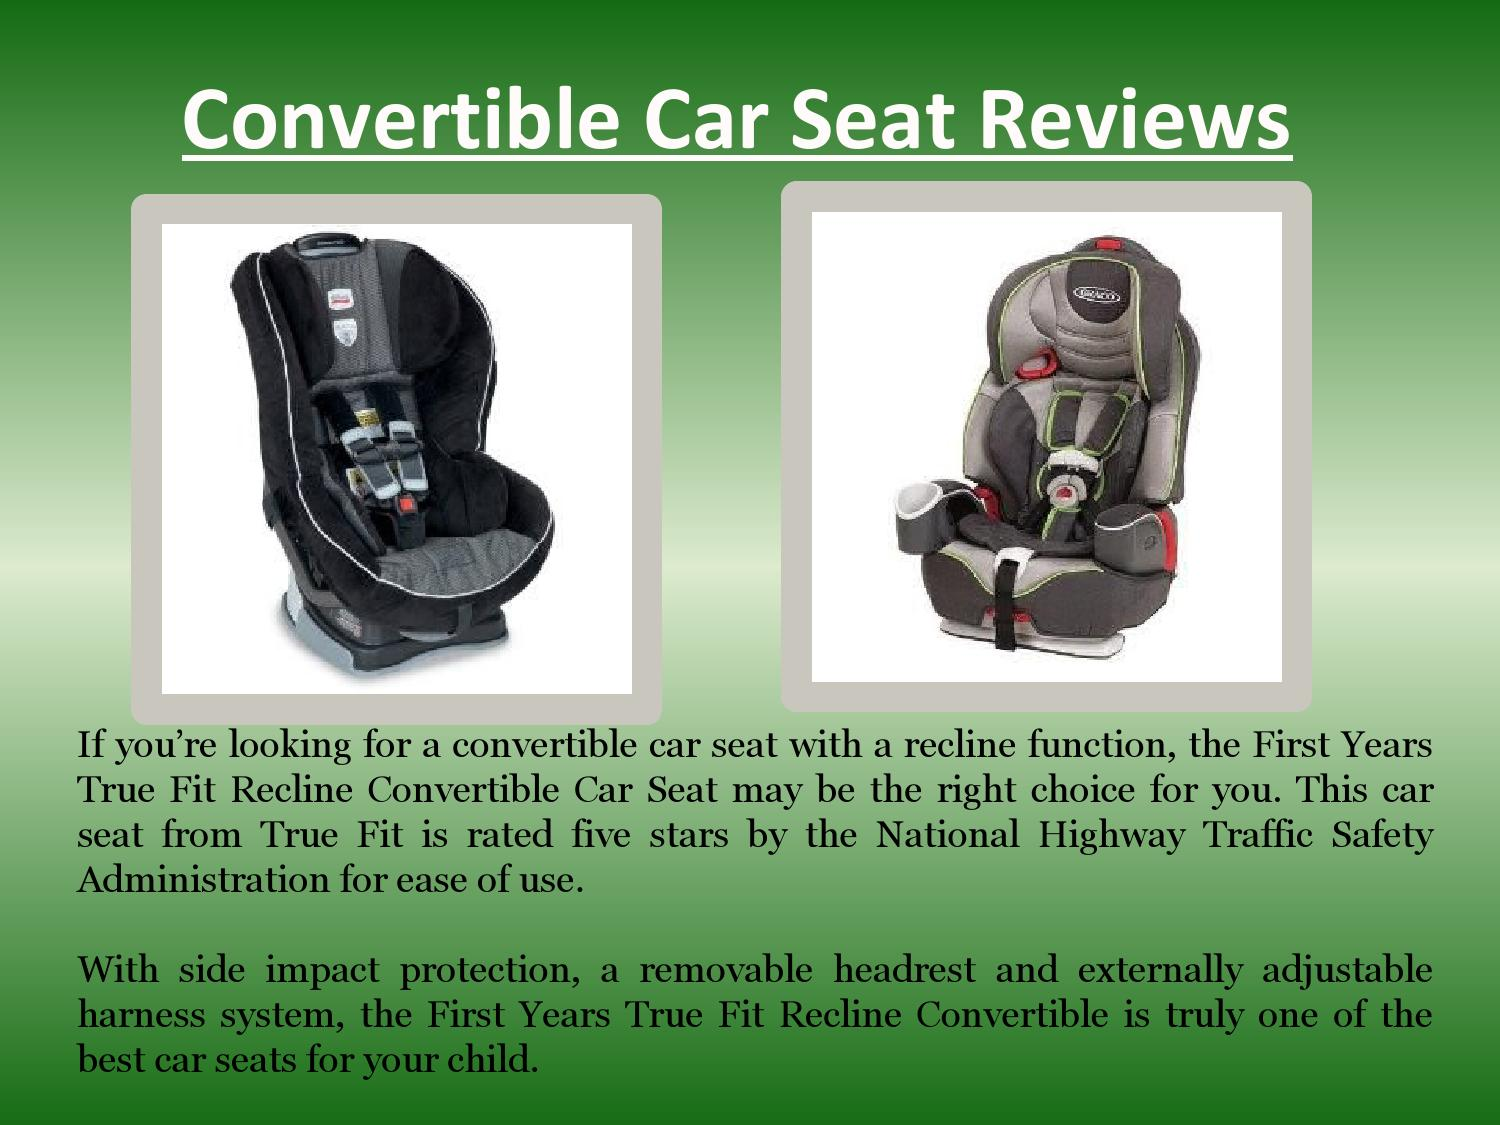 Convertible Car Seat Reviews By